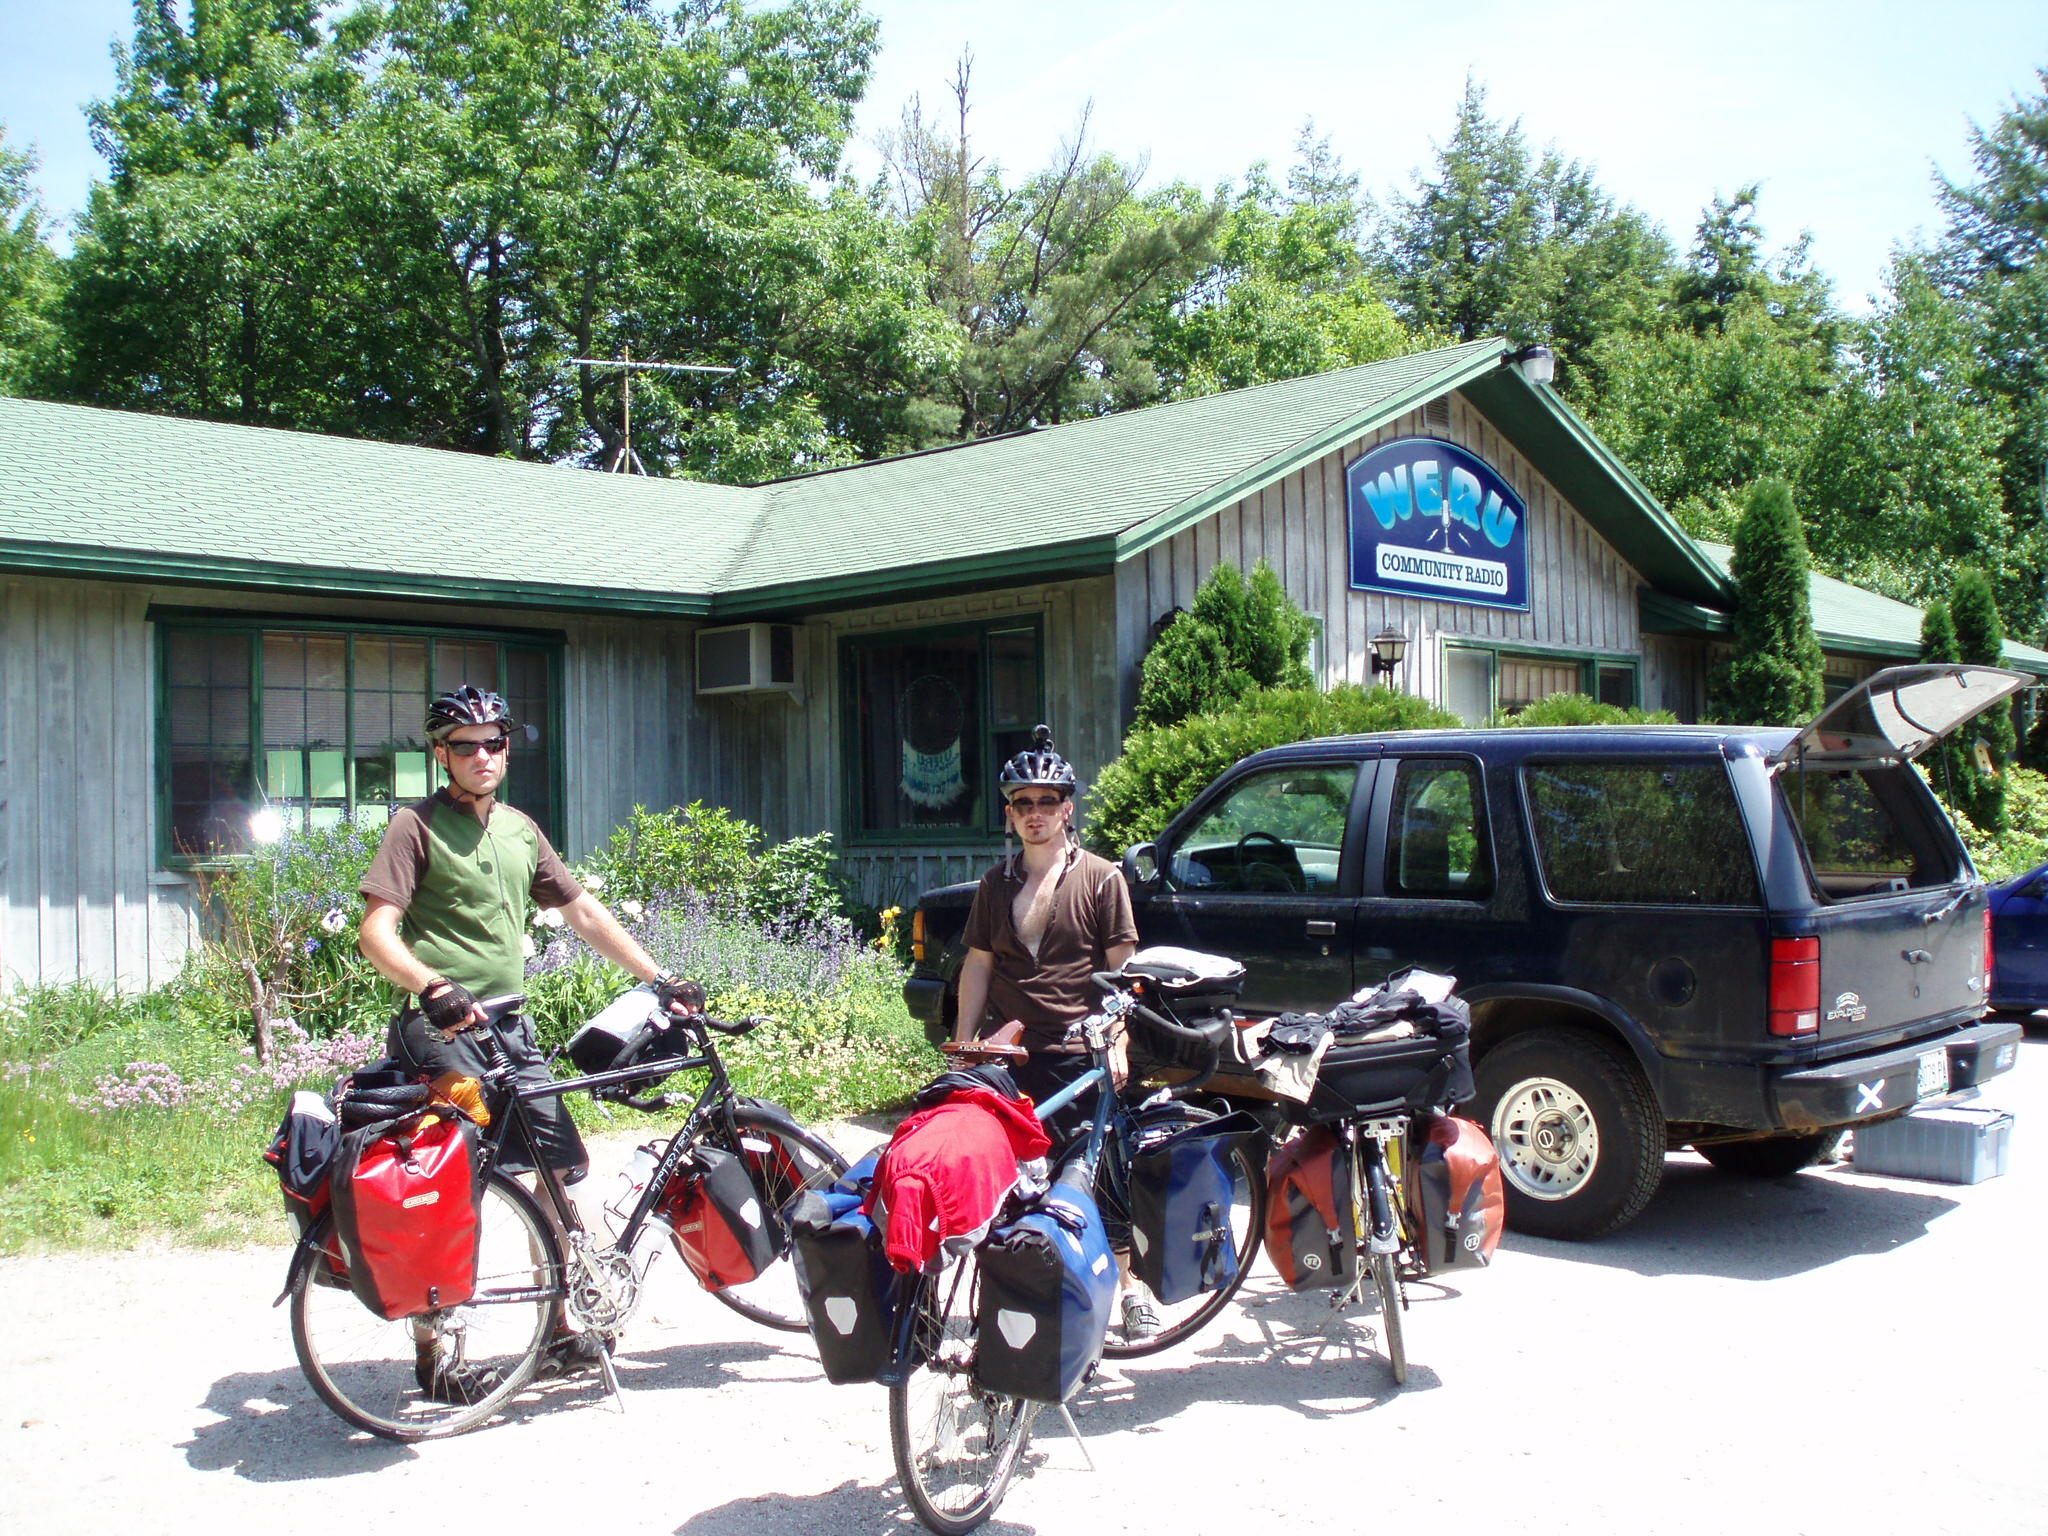 stopping by in front of a radio station during our long distance bike tour